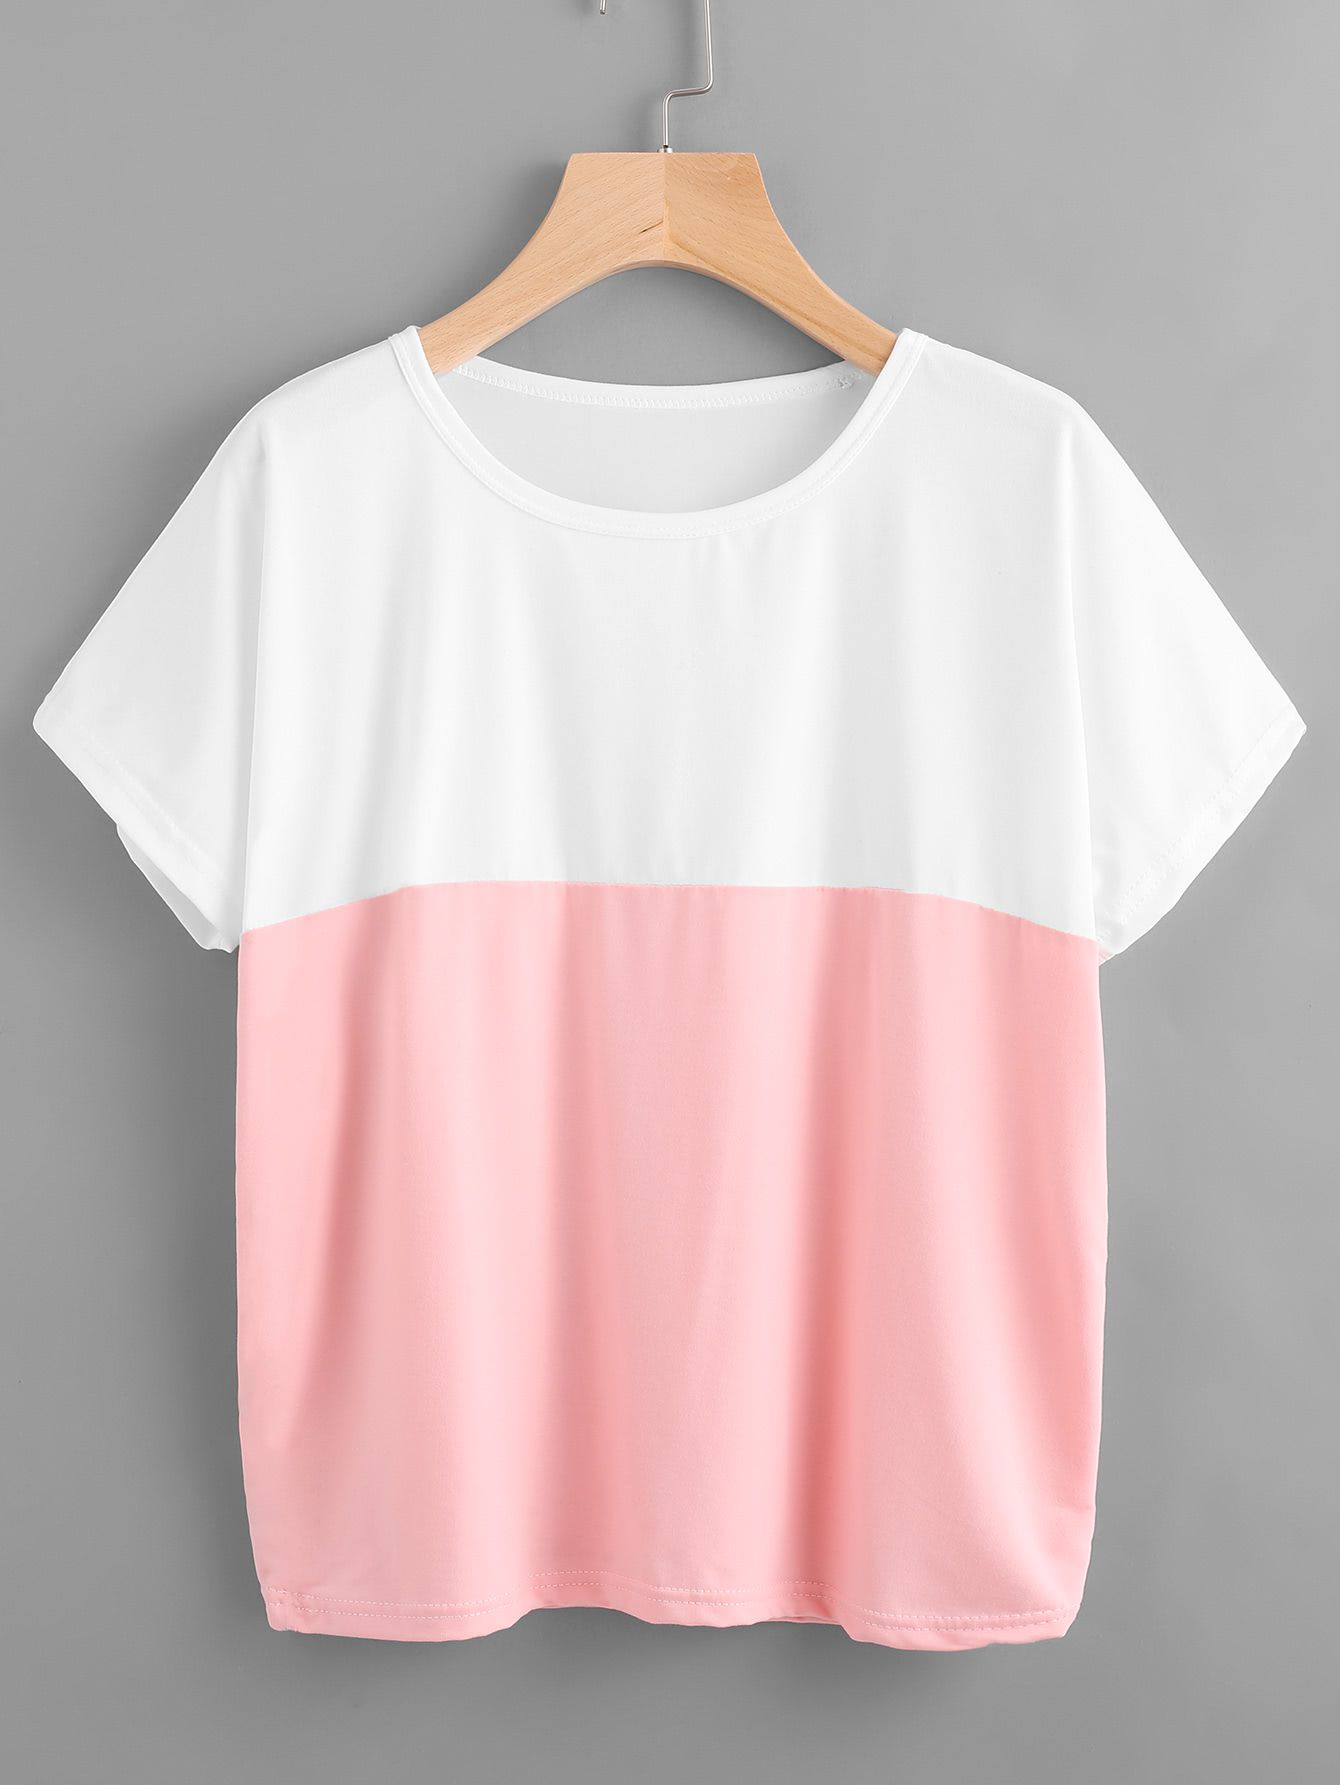 bc3536a06f Shop Color Block Tee online. SheIn offers Color Block Tee & more to fit  your fashionable needs.